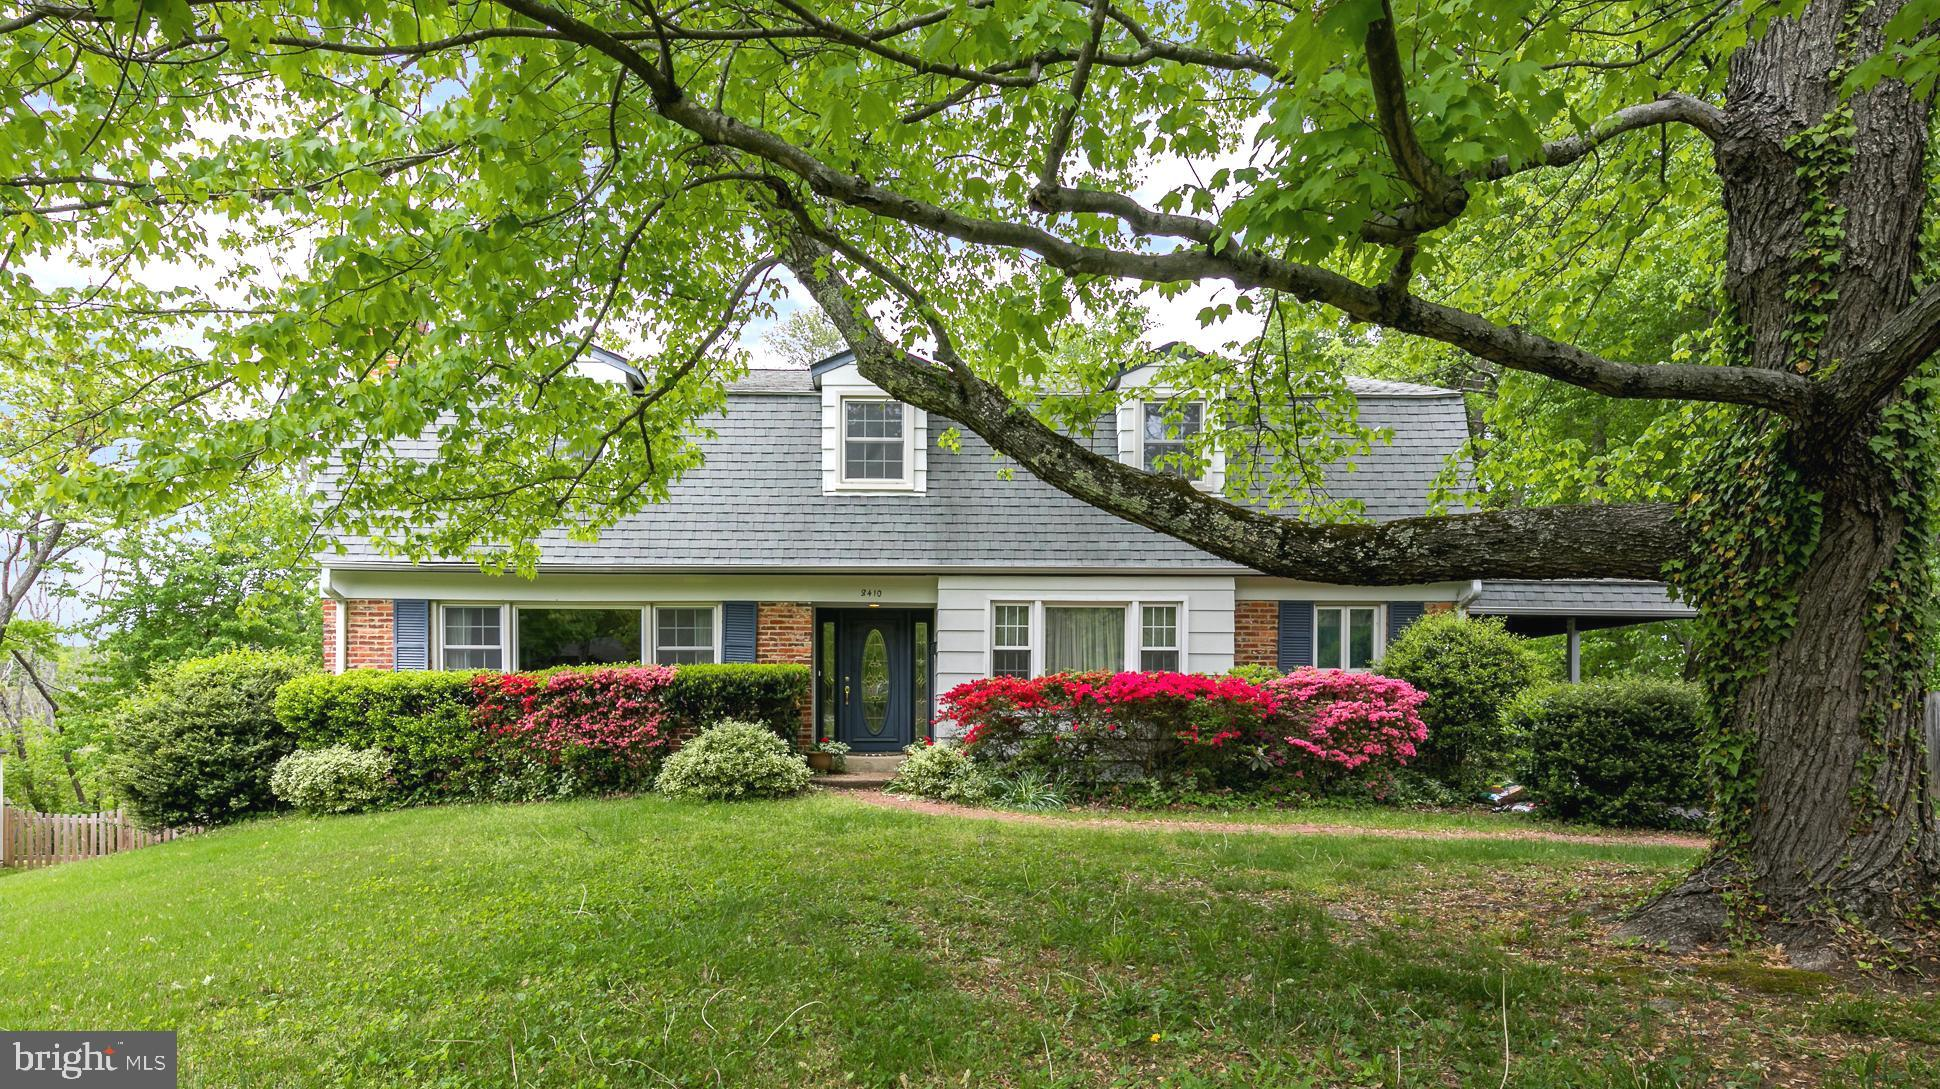 Don't miss your chance to see this beautiful waterfront home on Little Hunting Creek before it's gone!  With a large, light filled floor plan great for entertaining it surely won't last long.  The home features a lovely addition including a family room, eating area, and separate laundry room/pantry with so much extra storage.  Walk out from the addition to the full length deck that has sweeping views of the water! The kitchen leads you to a separate formal dining room and even more living space.  For the avid chef this home boasts a gas range with a trivection oven. There is beautiful hardwood flooring throughout both the main and upper level living spaces.  Flowering trees, bushes and perennial blooms dazzle with new colors popping up in Spring, Summer, and Fall! The floor plan can easily be converted back to a 6 bedroom by anyone looking for a home with a main level master.  Cast a line from your own back yard, or hop in a canoe to enjoy a relaxing ride to watch the majestic great blue heron, osprey, and great egrets just outside your door. Easy access to everything including Old town Alexandria and DC from this amazing location.  Seller offering home warranty.  New price below appraised value!